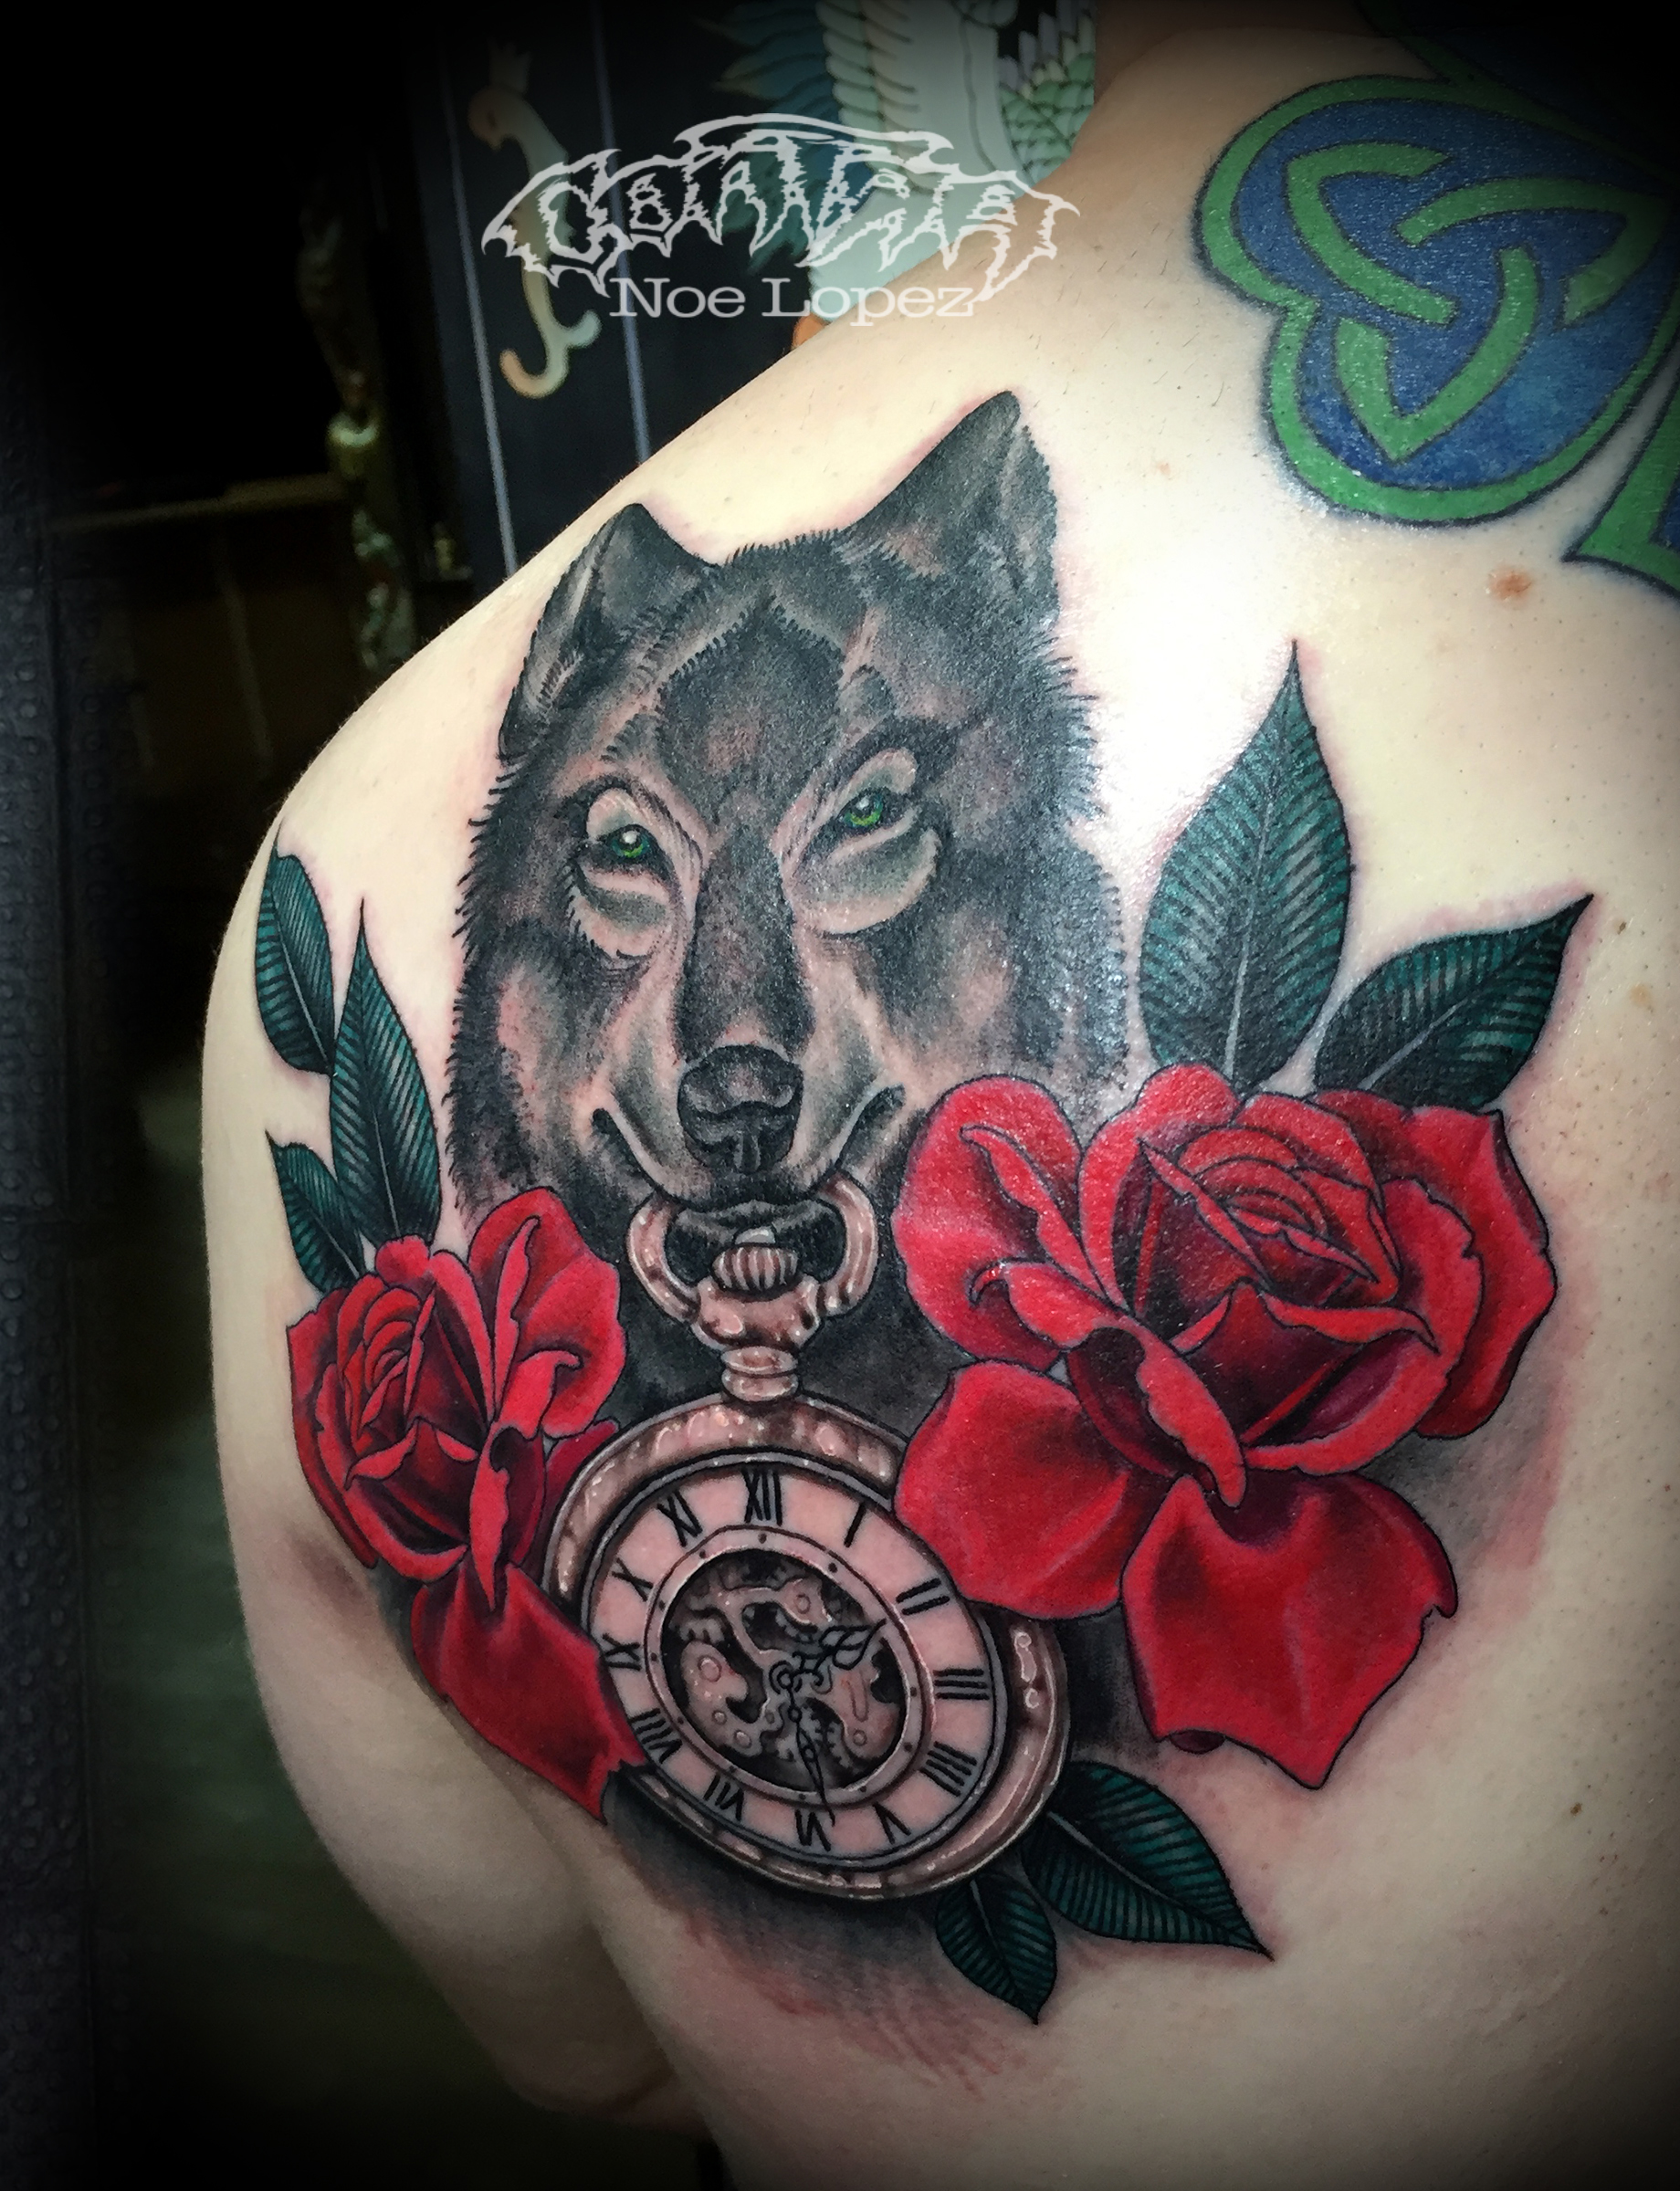 Noe Lopez Tattoos online images